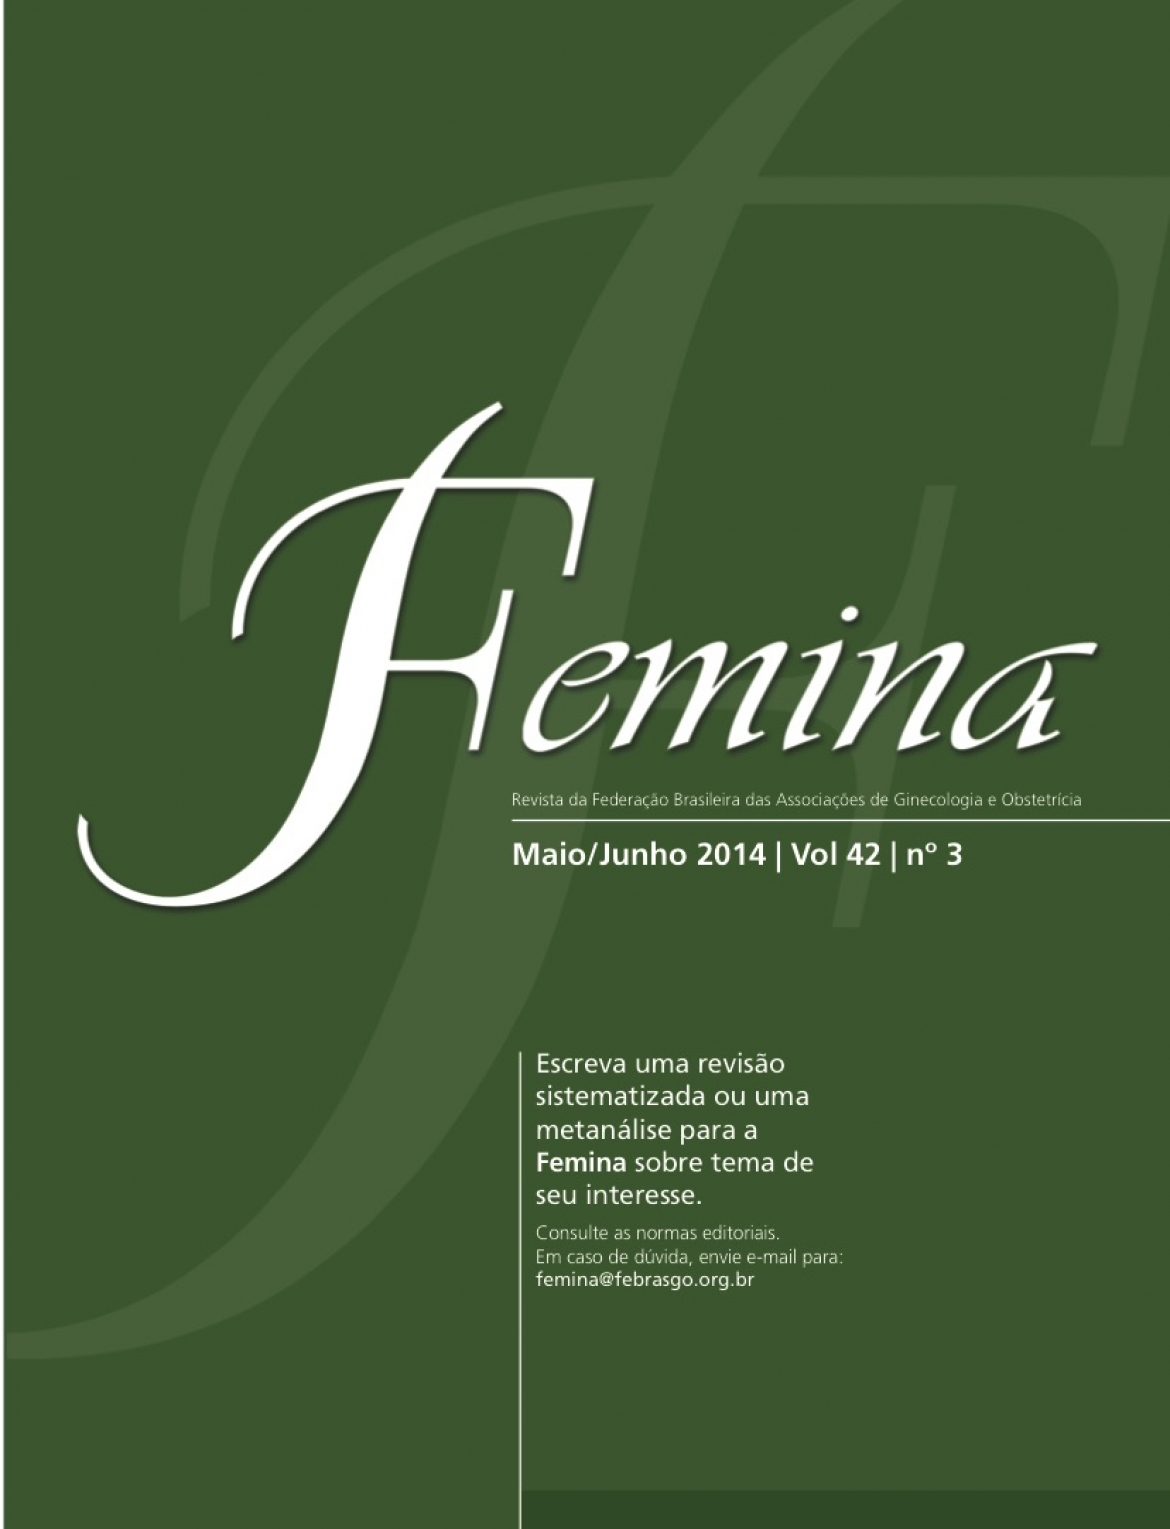 Revista Femina – 2014 | Vol 42 | nº 3